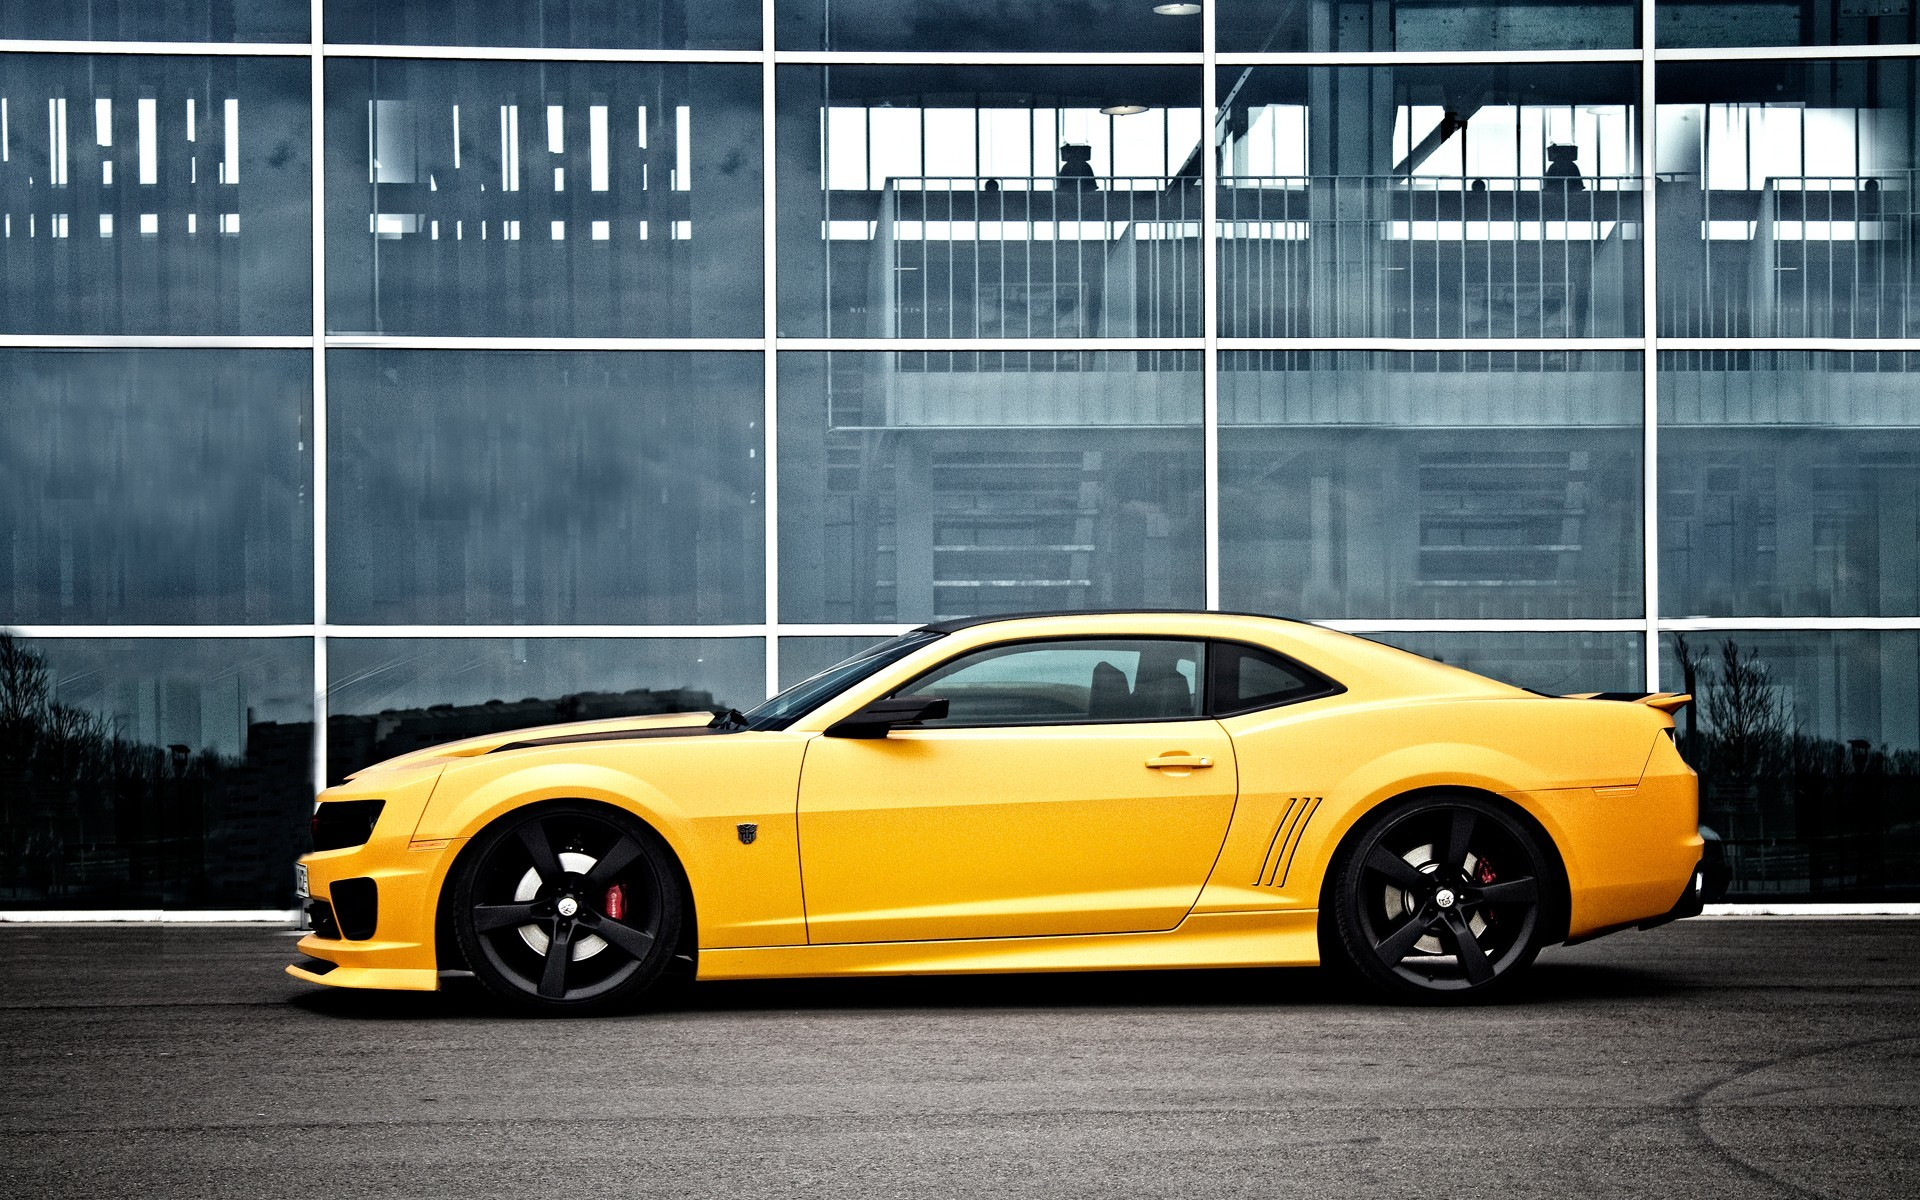 cars chevrolet camaro HD Wallpaper